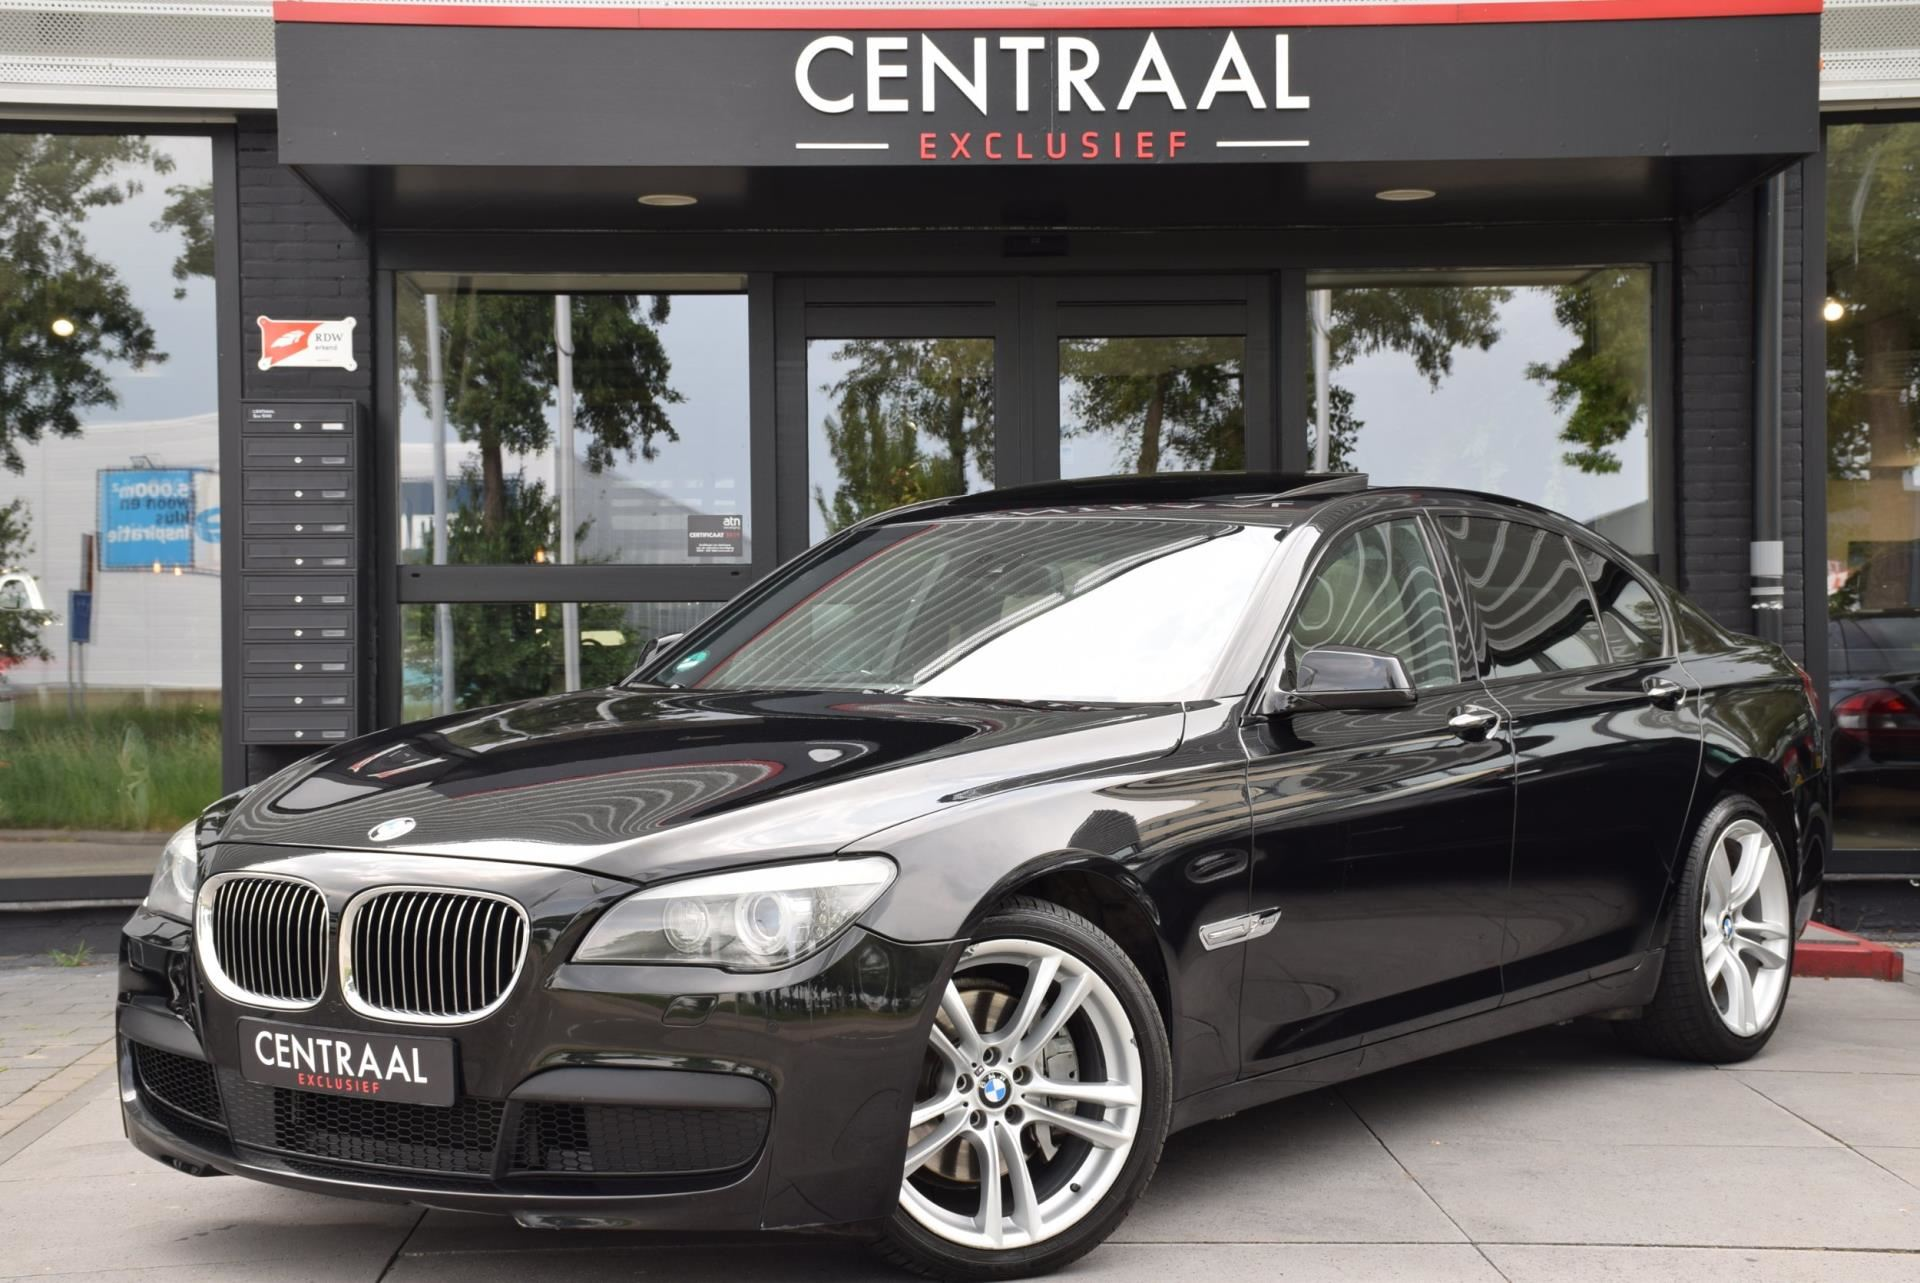 BMW 740d occasion - Centraal Exclusief B.V.